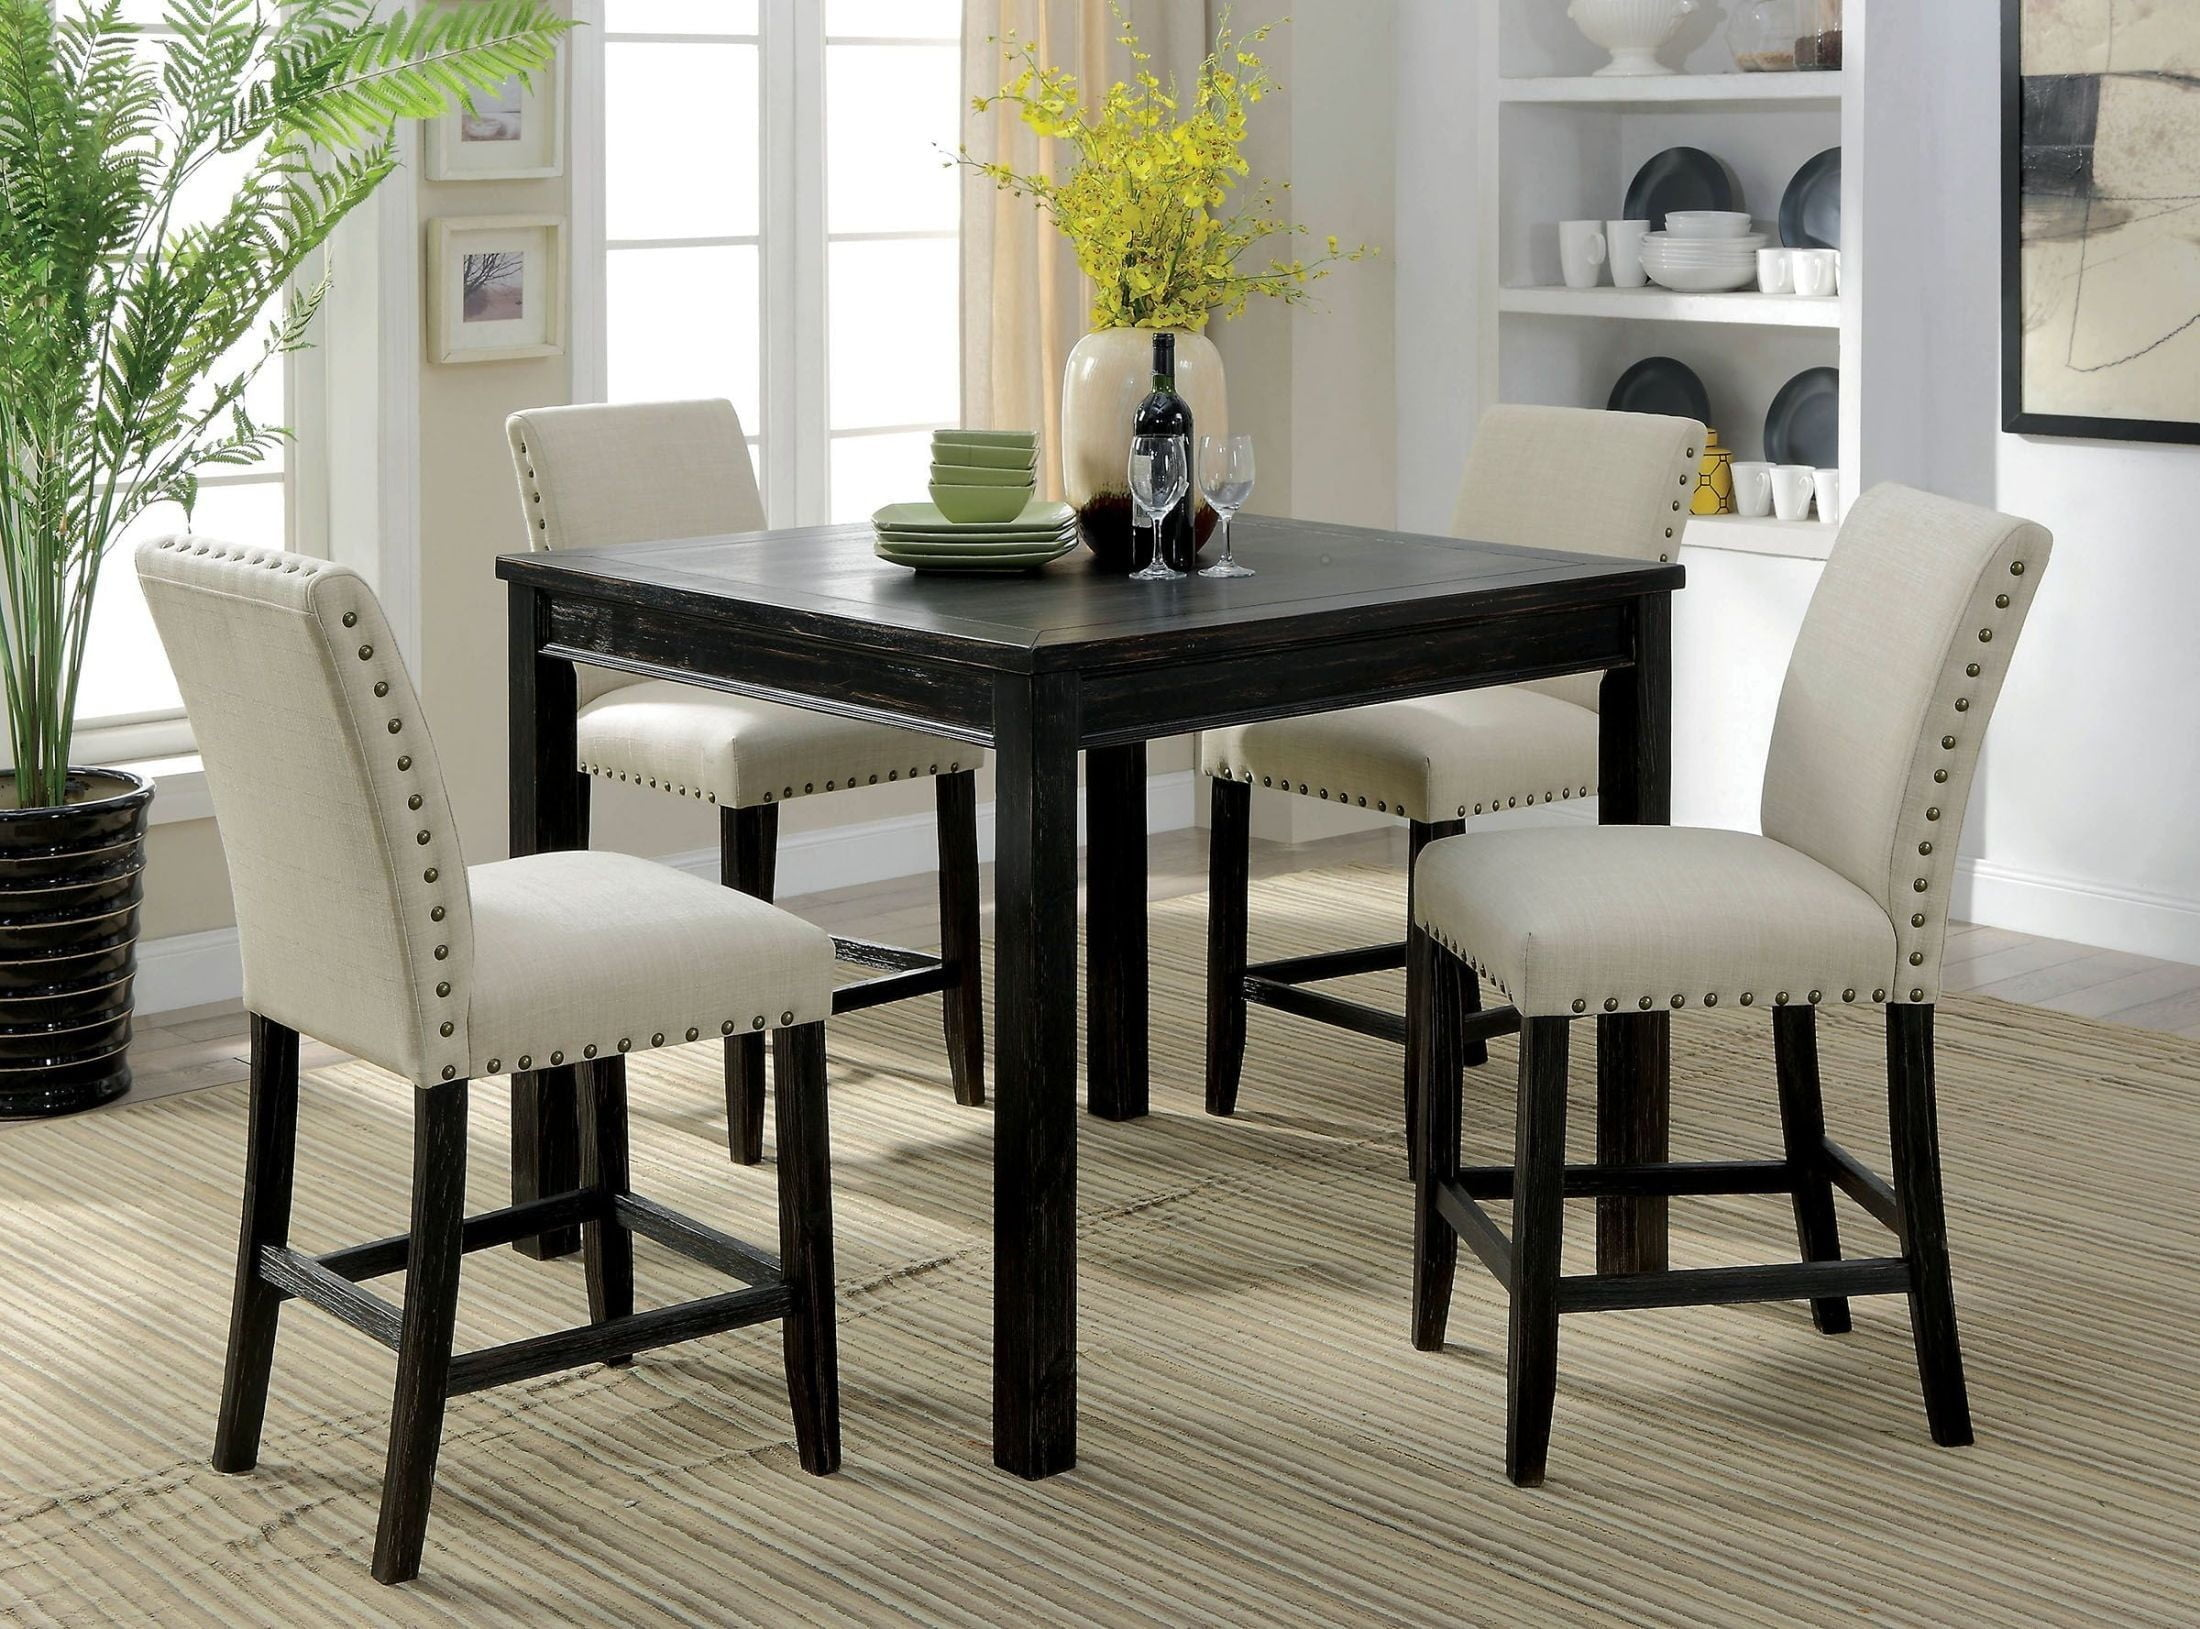 Kristie Antique Black Counter Height Dining Table Set from ...